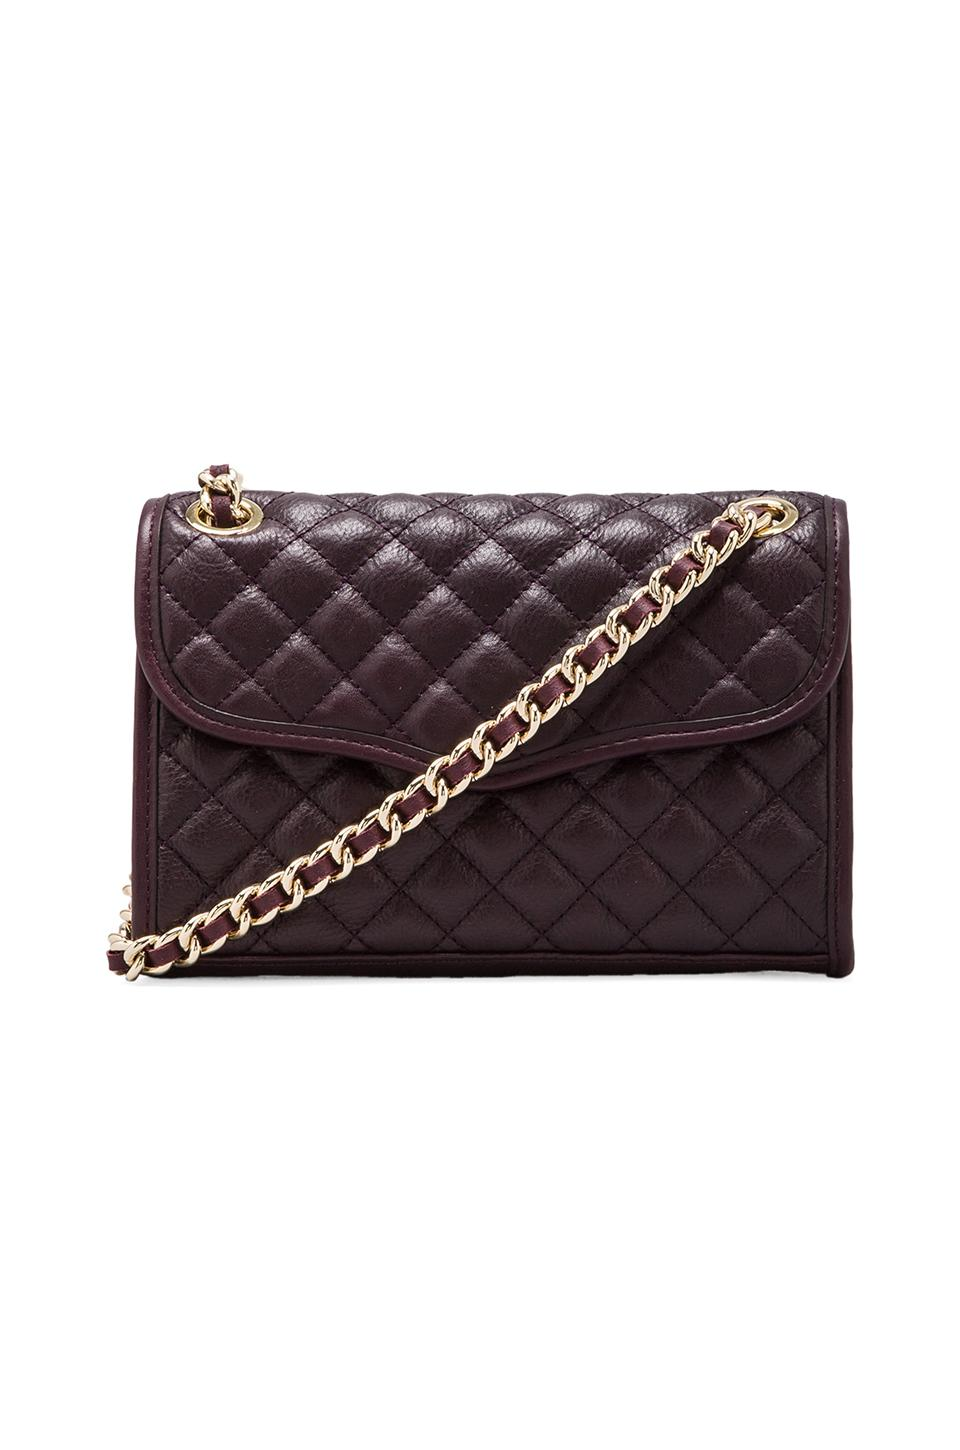 Rebecca Minkoff Mini Affair in Black Cherry